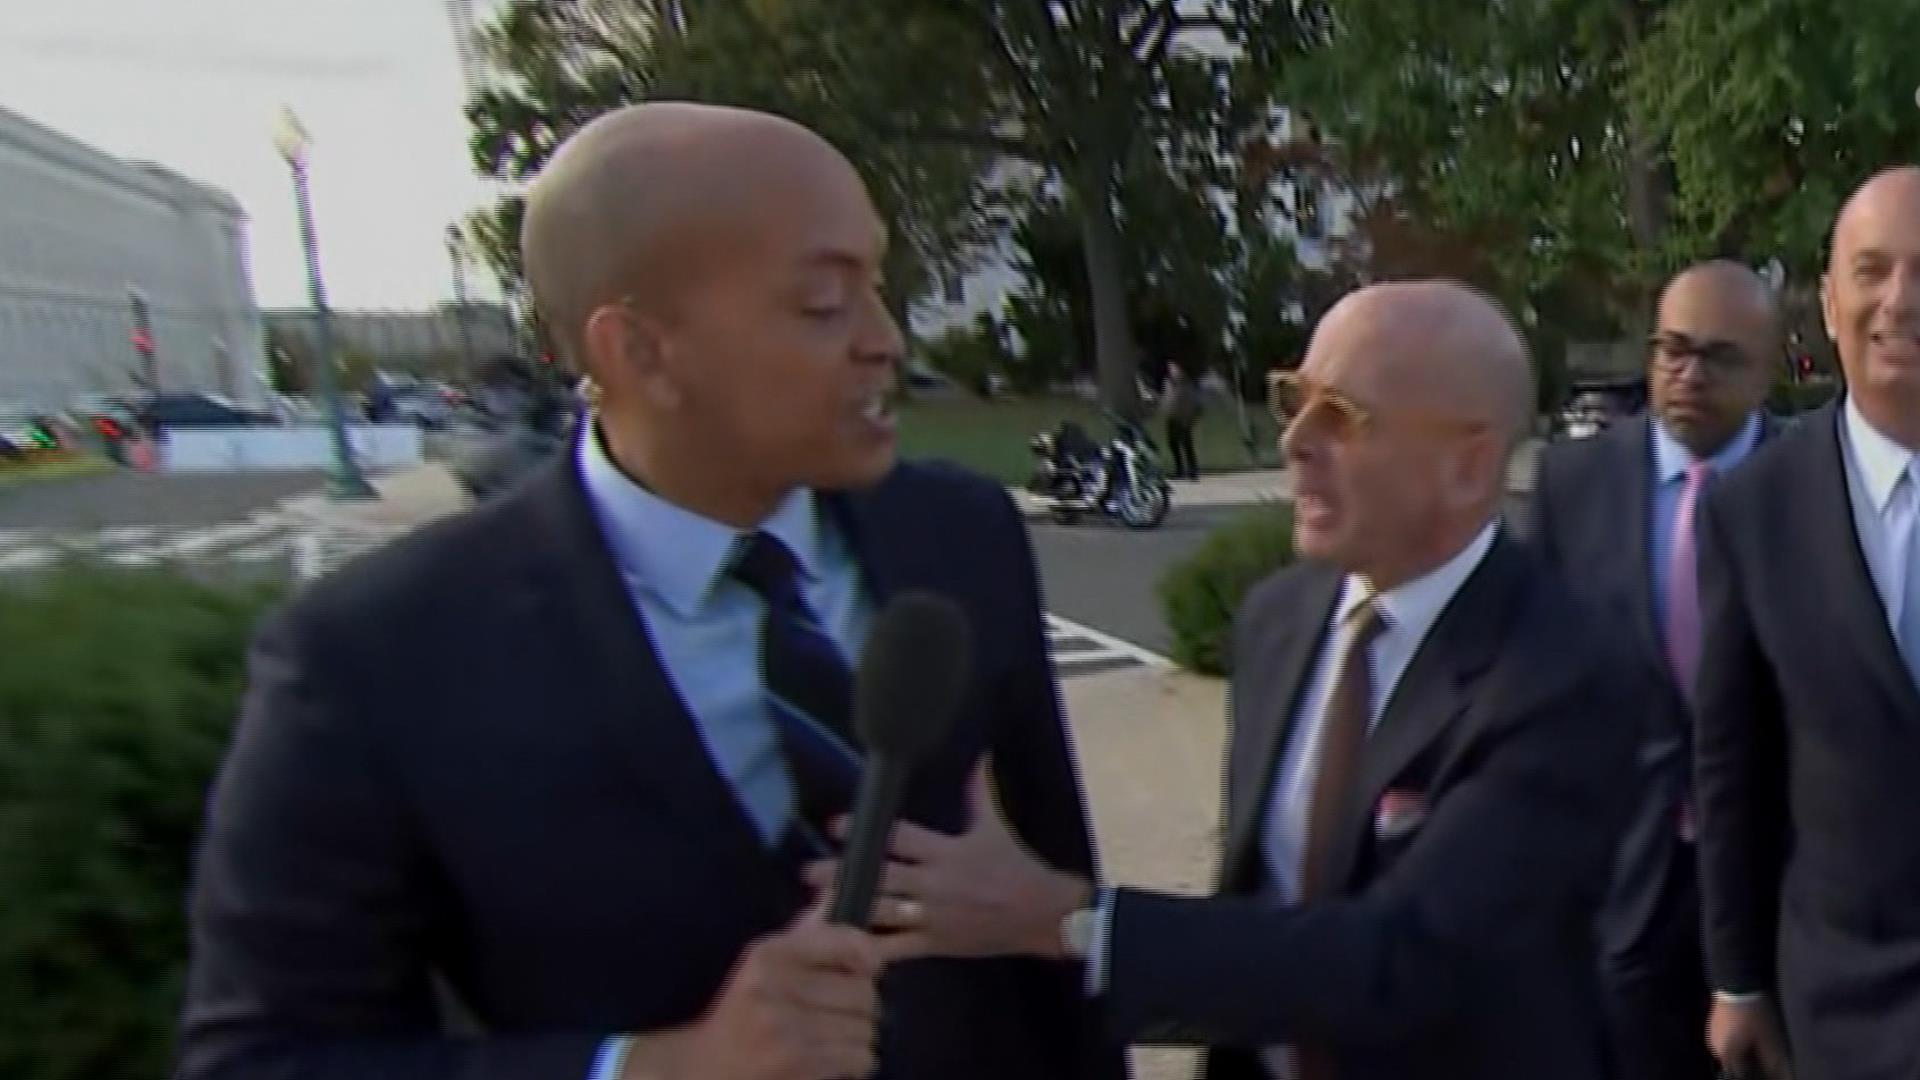 Man appears to push NBC's Geoff Bennett while he tries to question Gordon Sondland